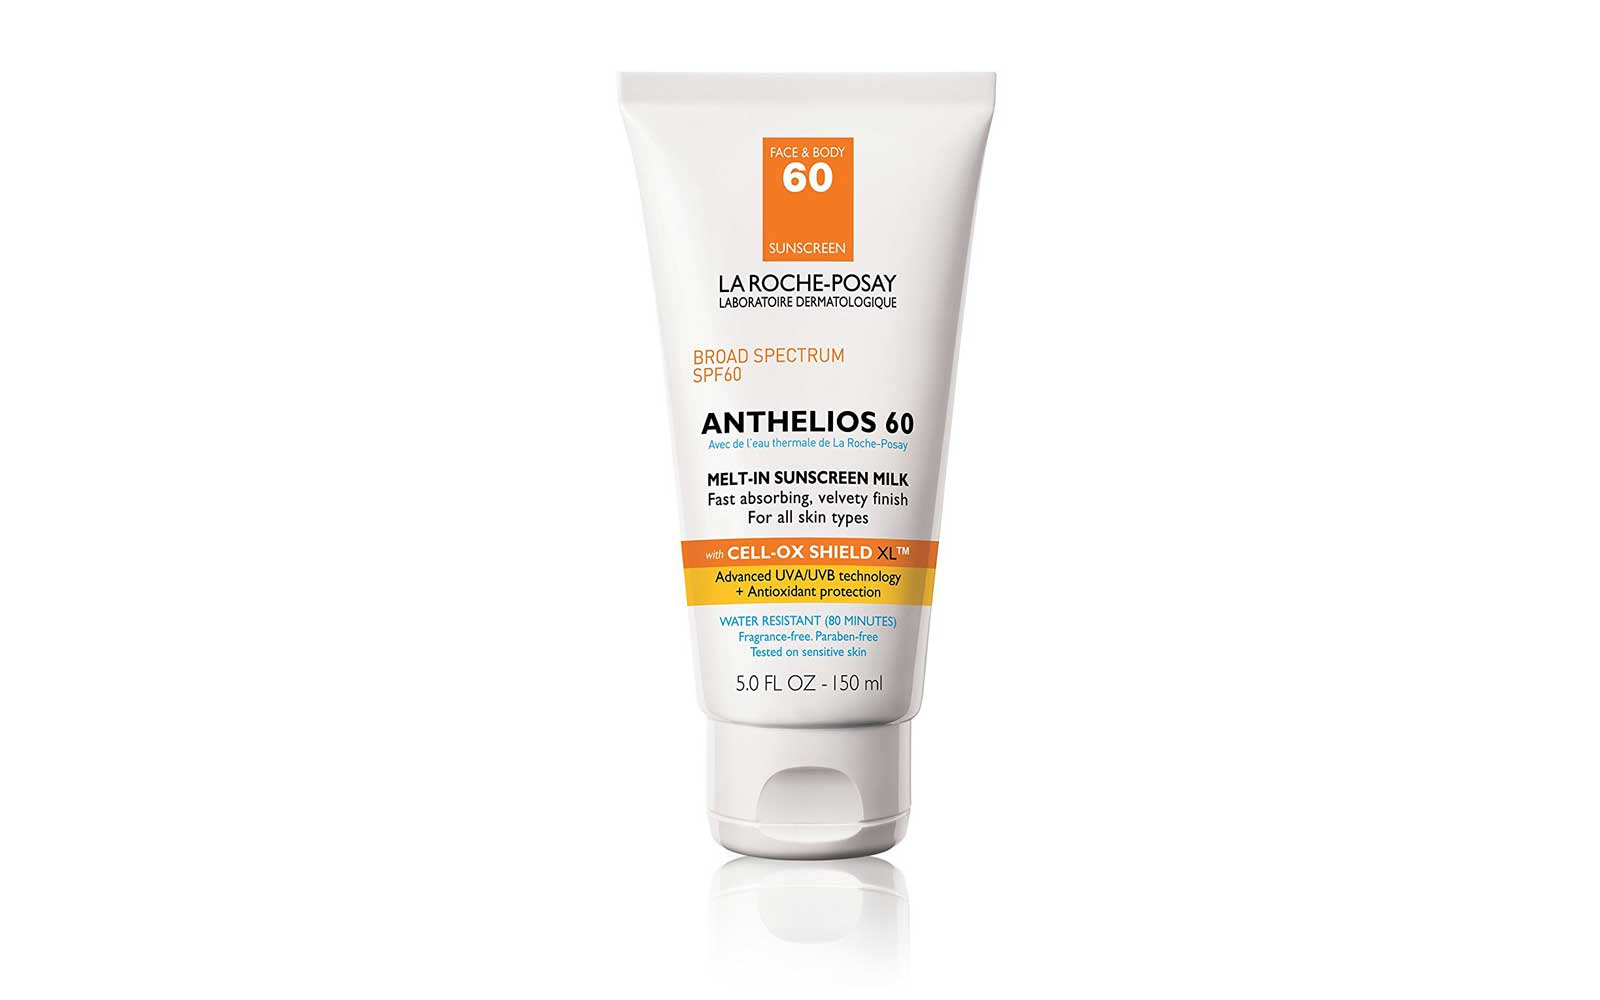 La Roche-Posay Anthelios 60 Body and Face Sunscreen Milk